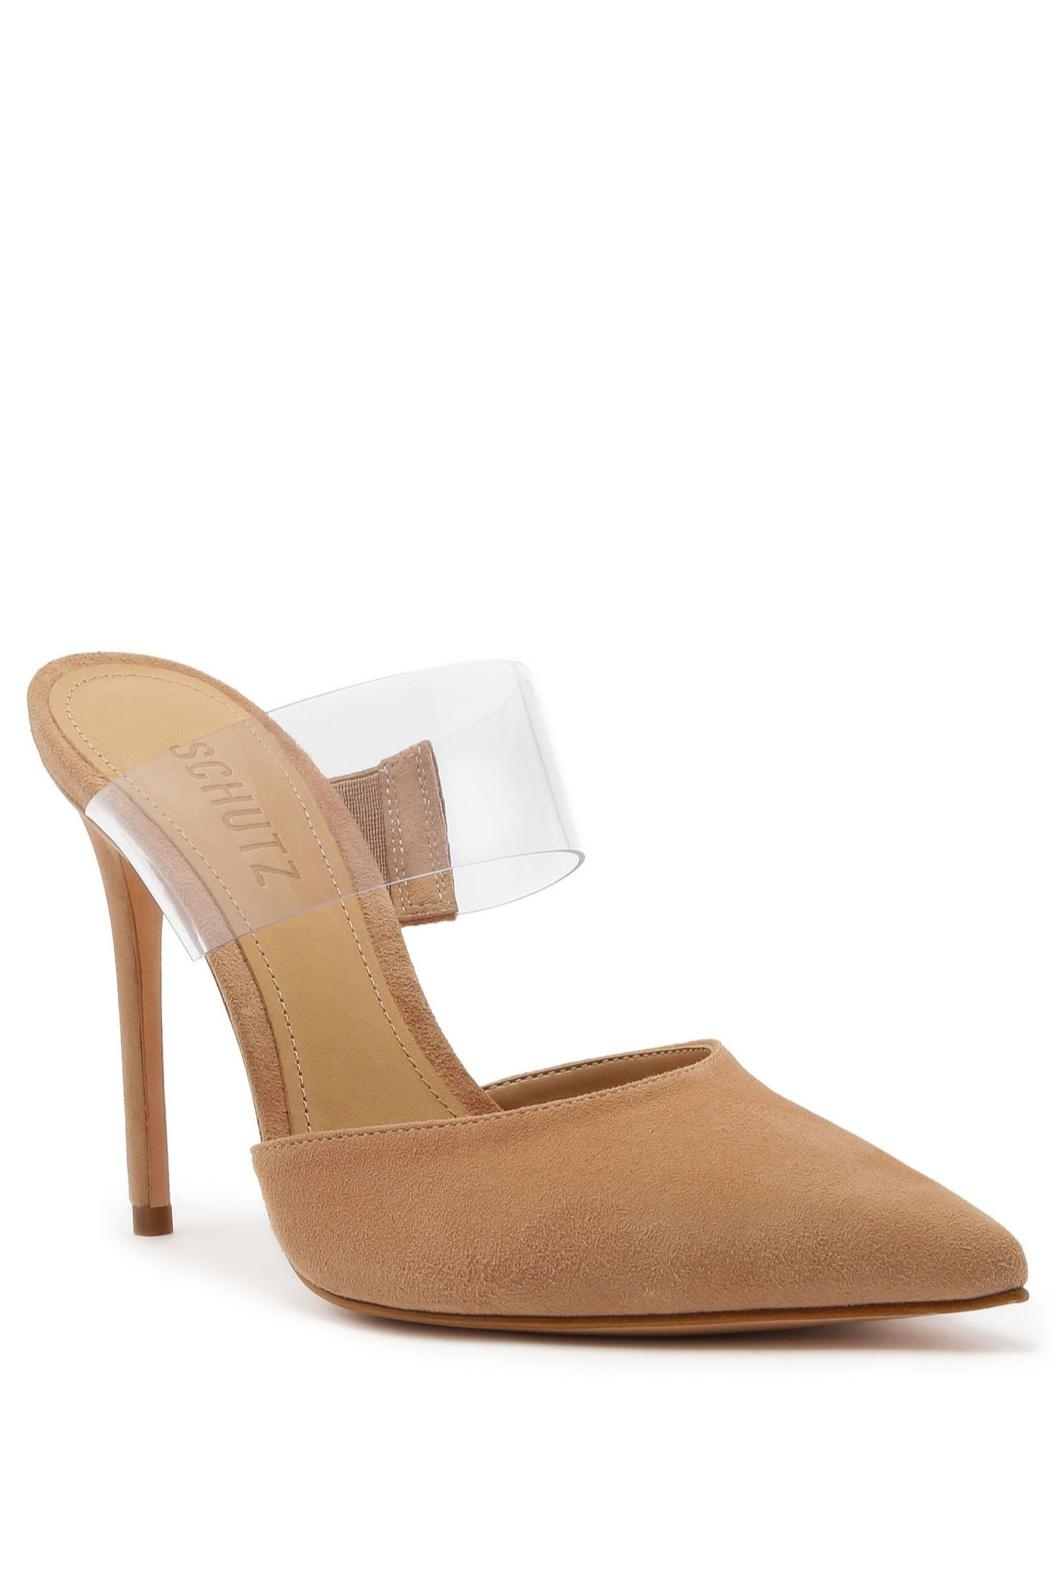 Schutz Sionne Suede Mule - Front Cropped Image